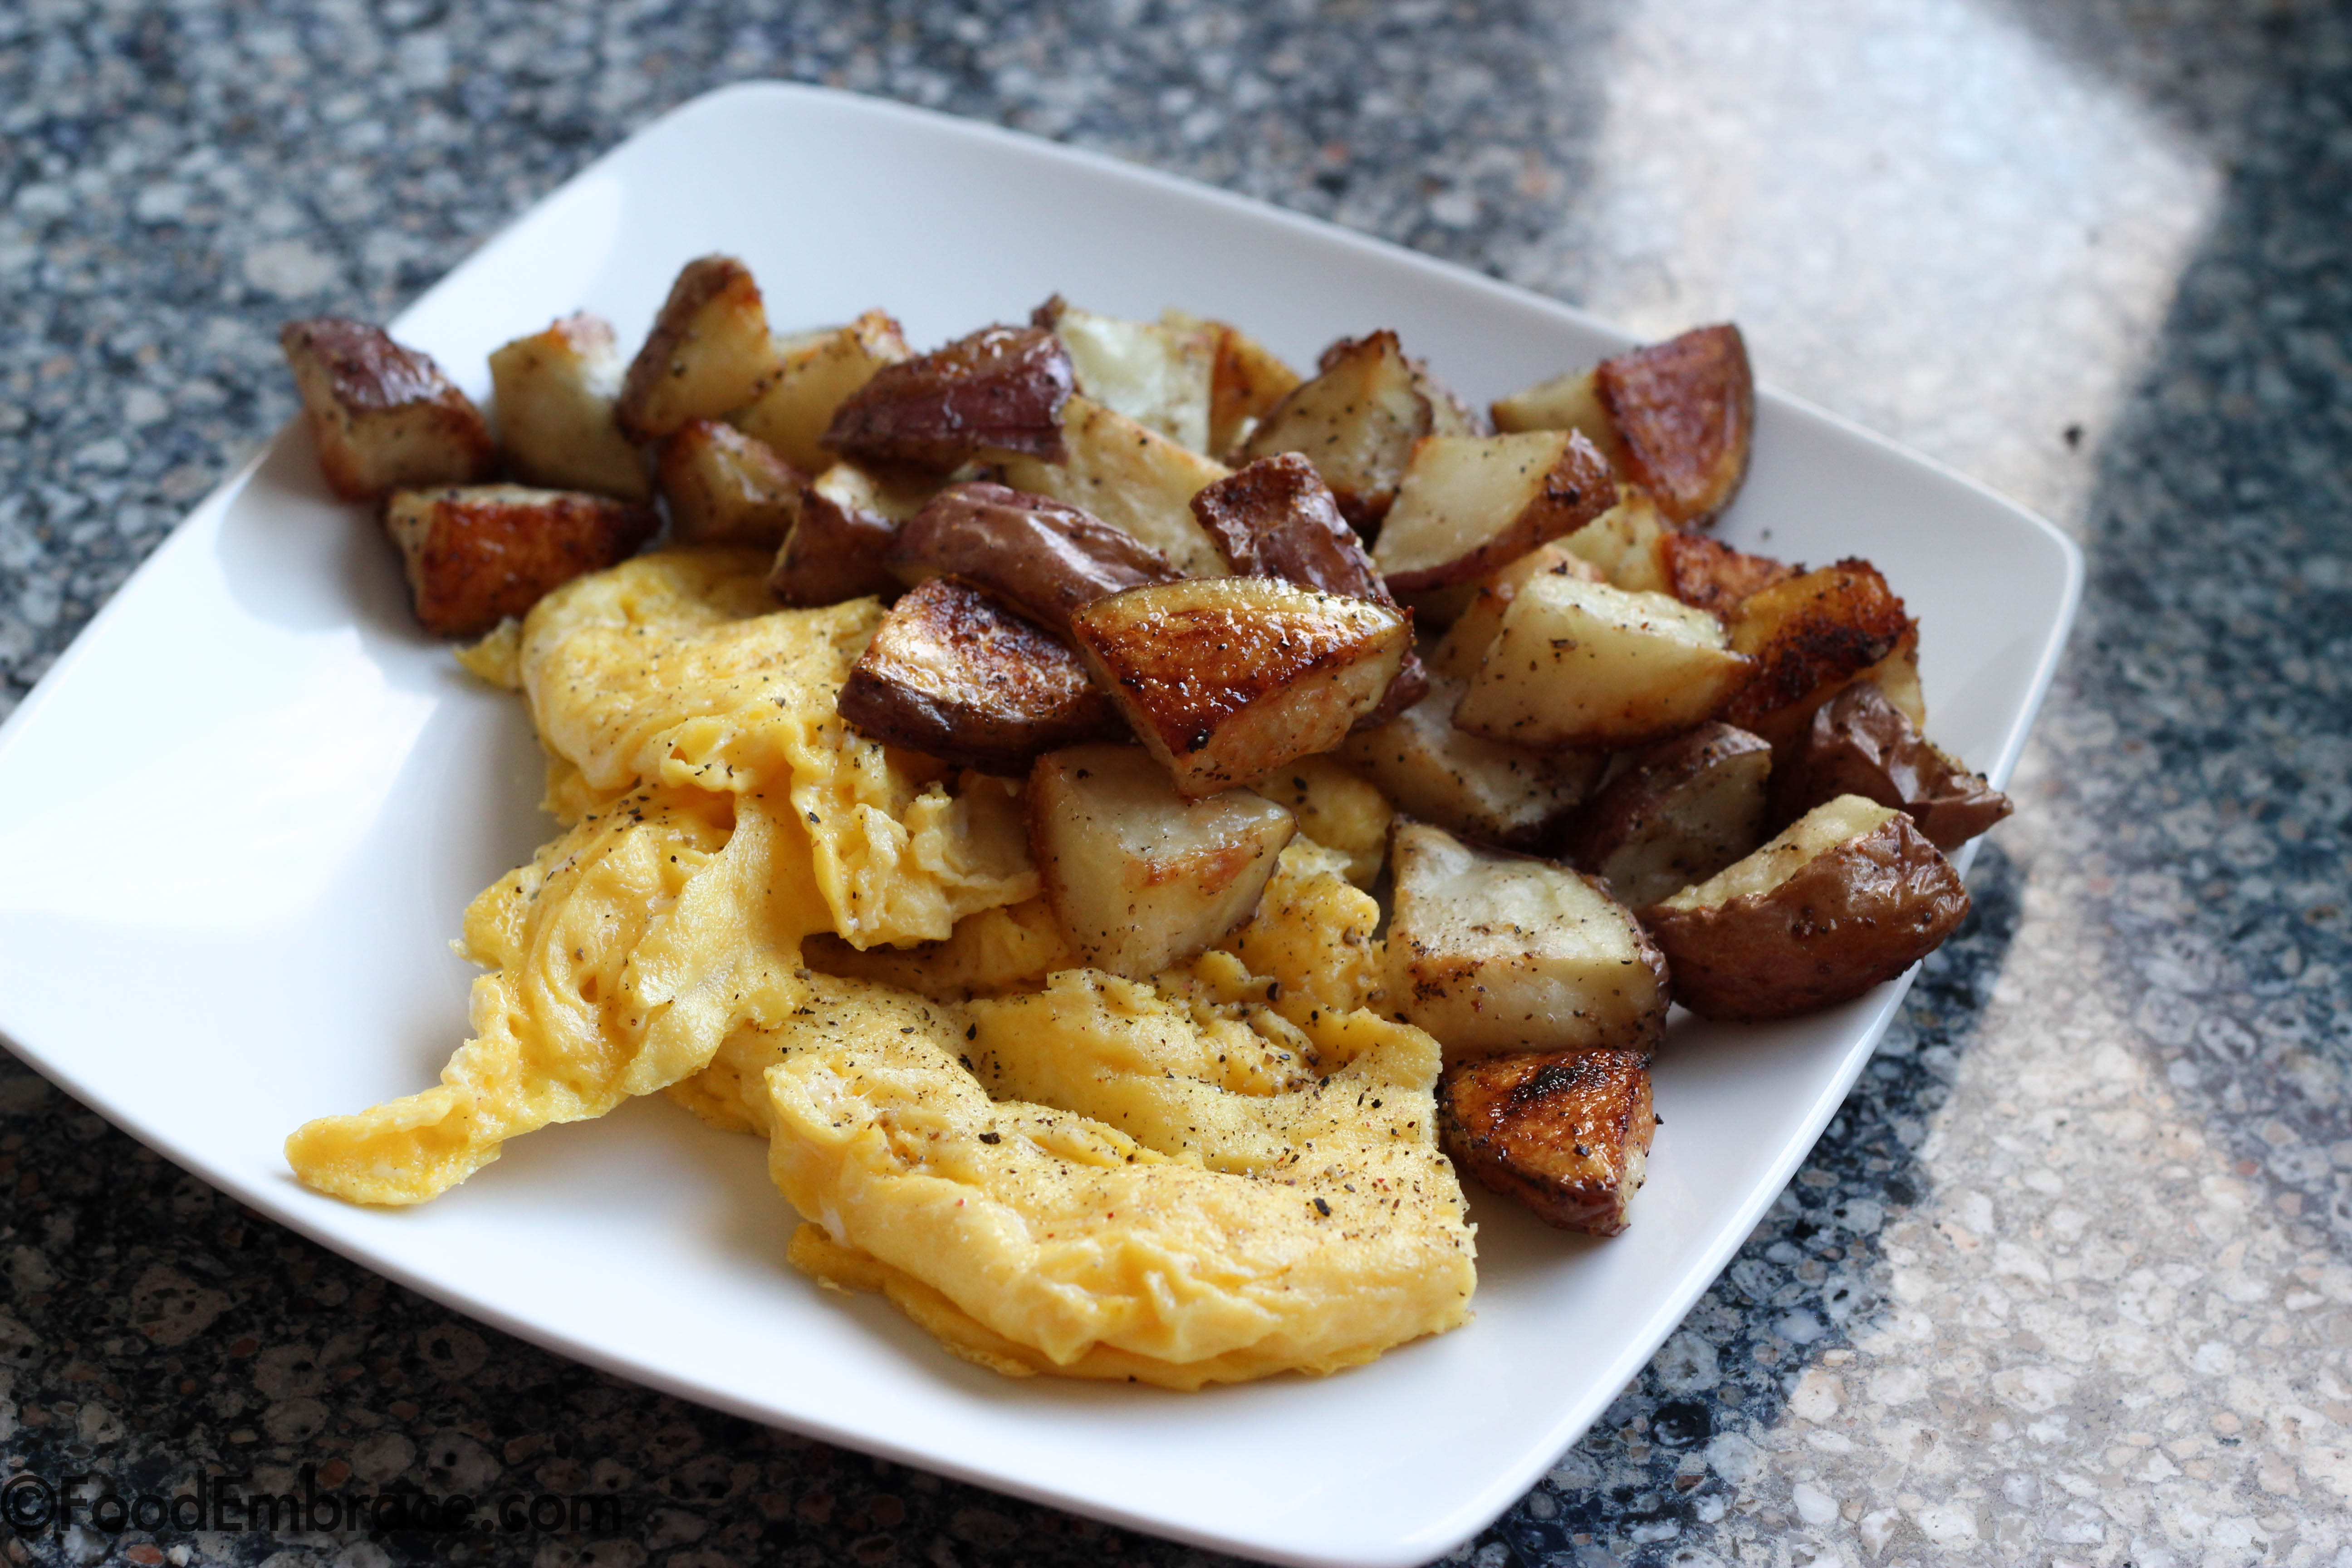 Eggs and roasted potatoes